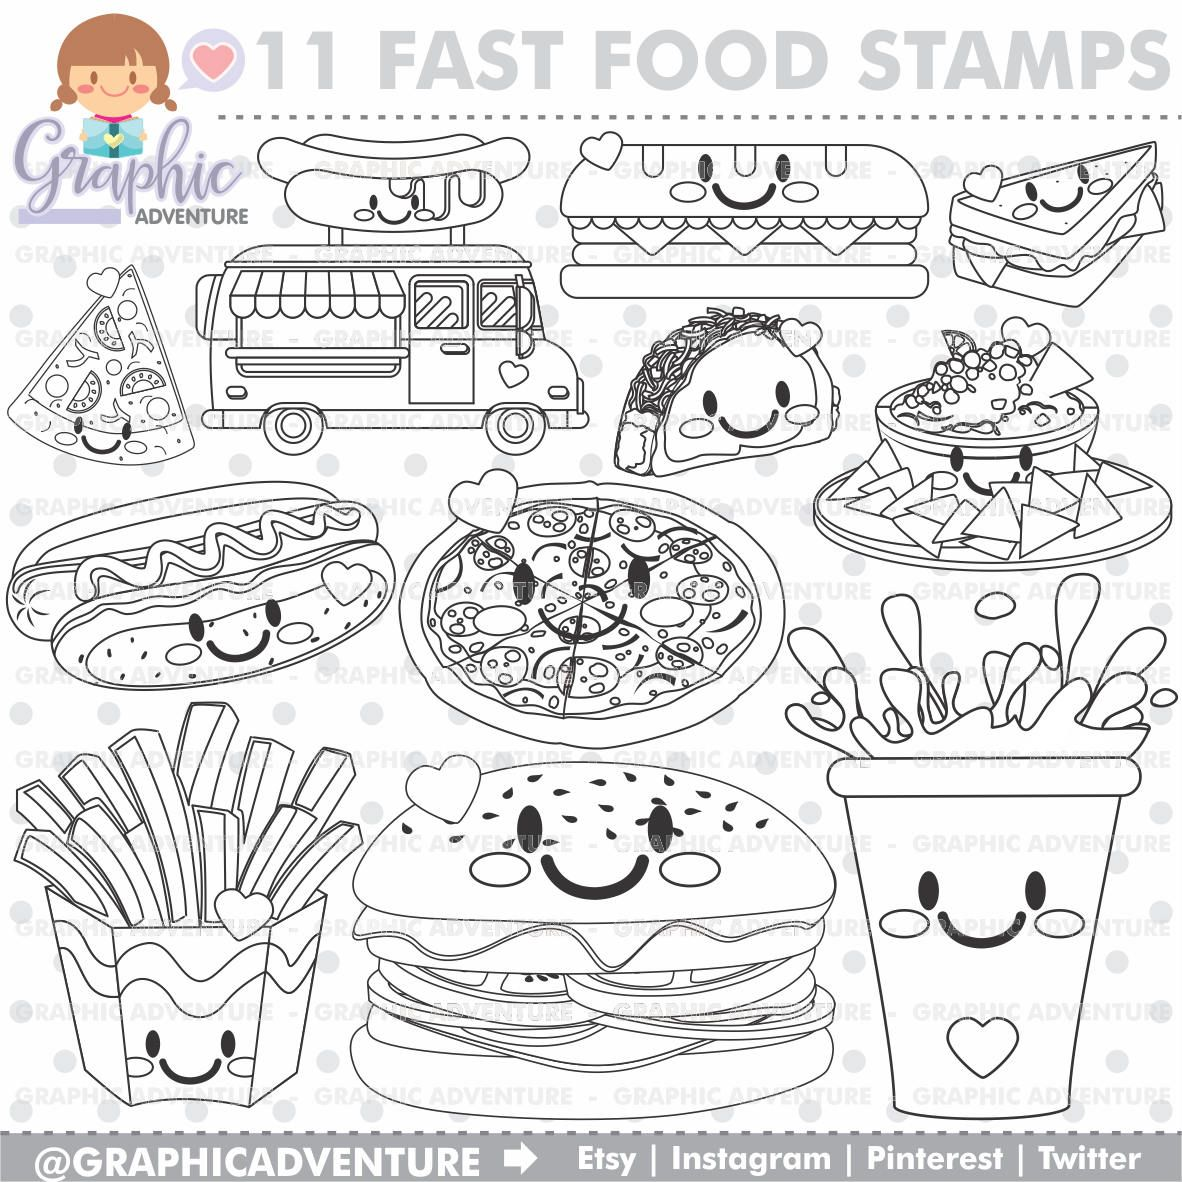 75 Off Food Stamps Fast Food Stamps Digi Stamp Digital Stamps Food Coloring Page Commercial Use Food Digistamp Food Digi Stamp Clip Art Digital Stamps